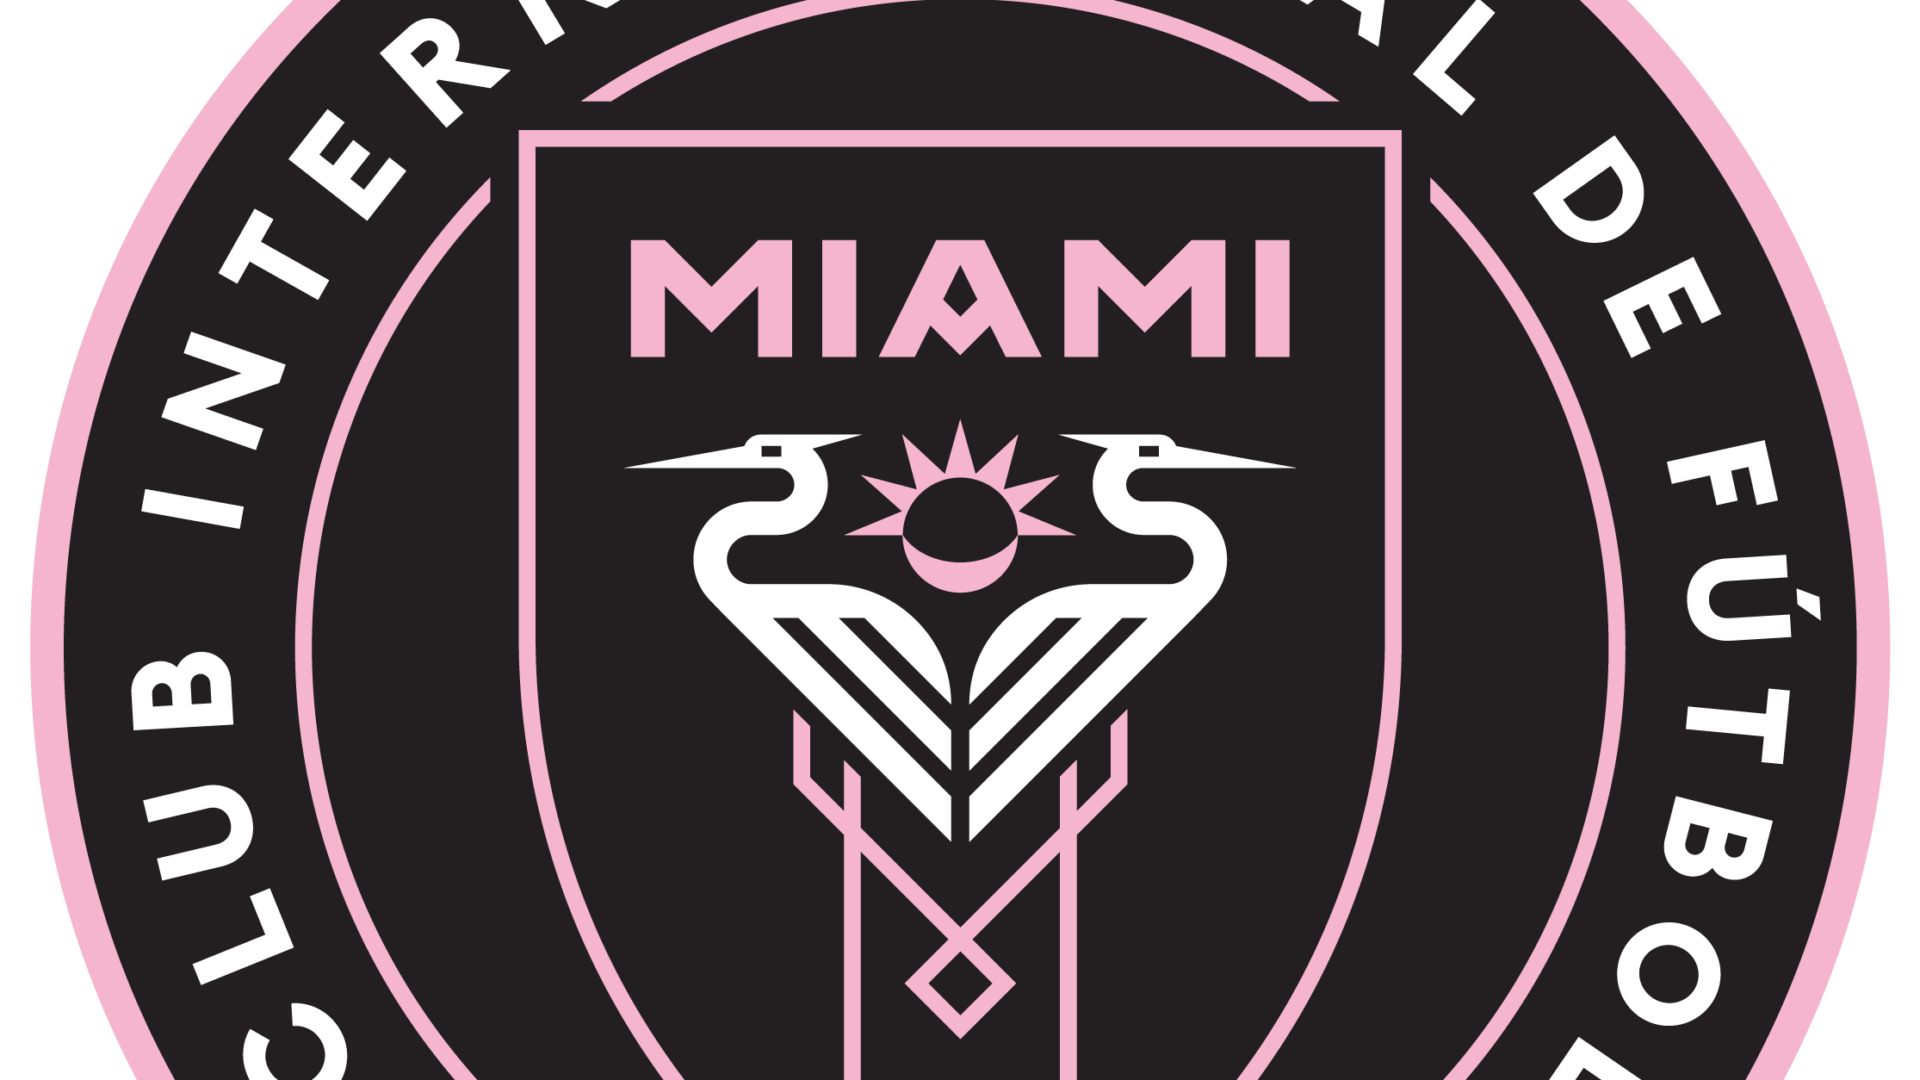 VIDEO HIGHLIGHTS: 10-man Inter Miami stumbles against D.C. United